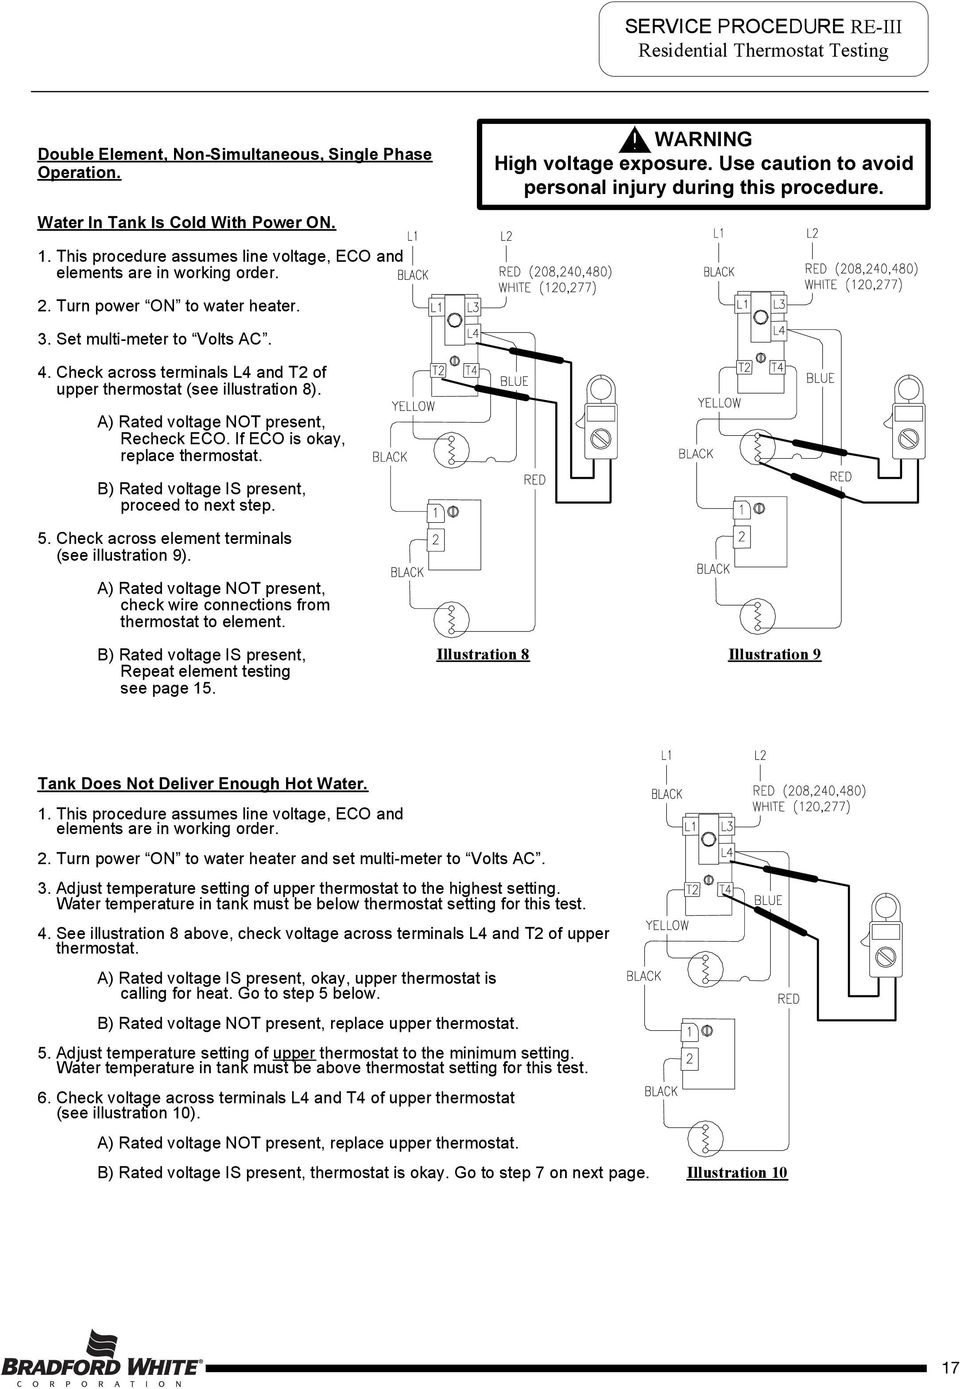 Check across terminals L4 and T2 of upper thermostat (see illustration 8). Recheck ECO. If ECO is okay, replace thermostat. proceed to next step. 5.